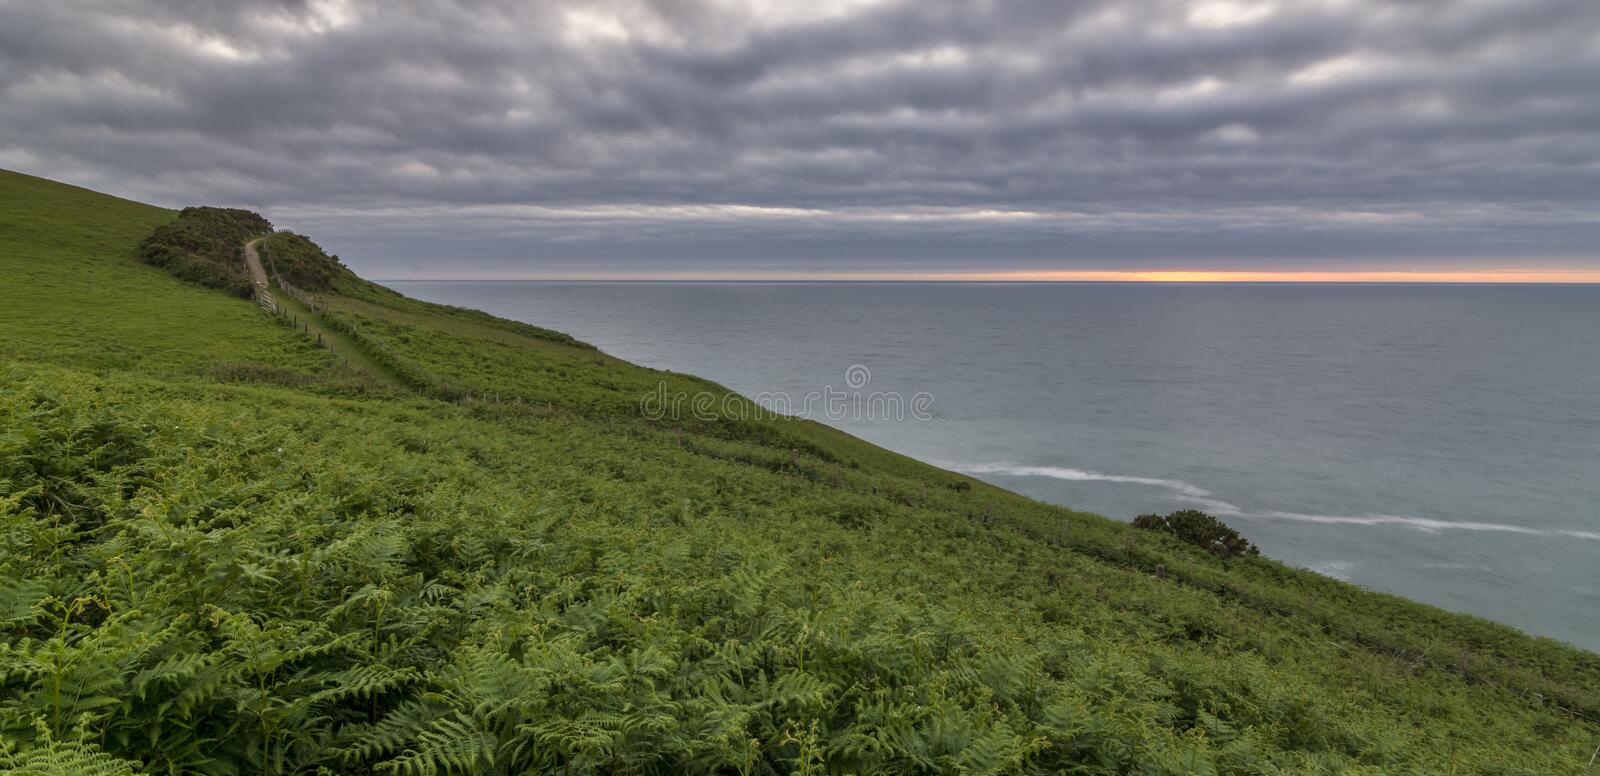 UK coastal path view, with a cloudy sky and a thin sunset. Welsh coastal path, near Aberaeron, Caeredigion, at sunset stock photography